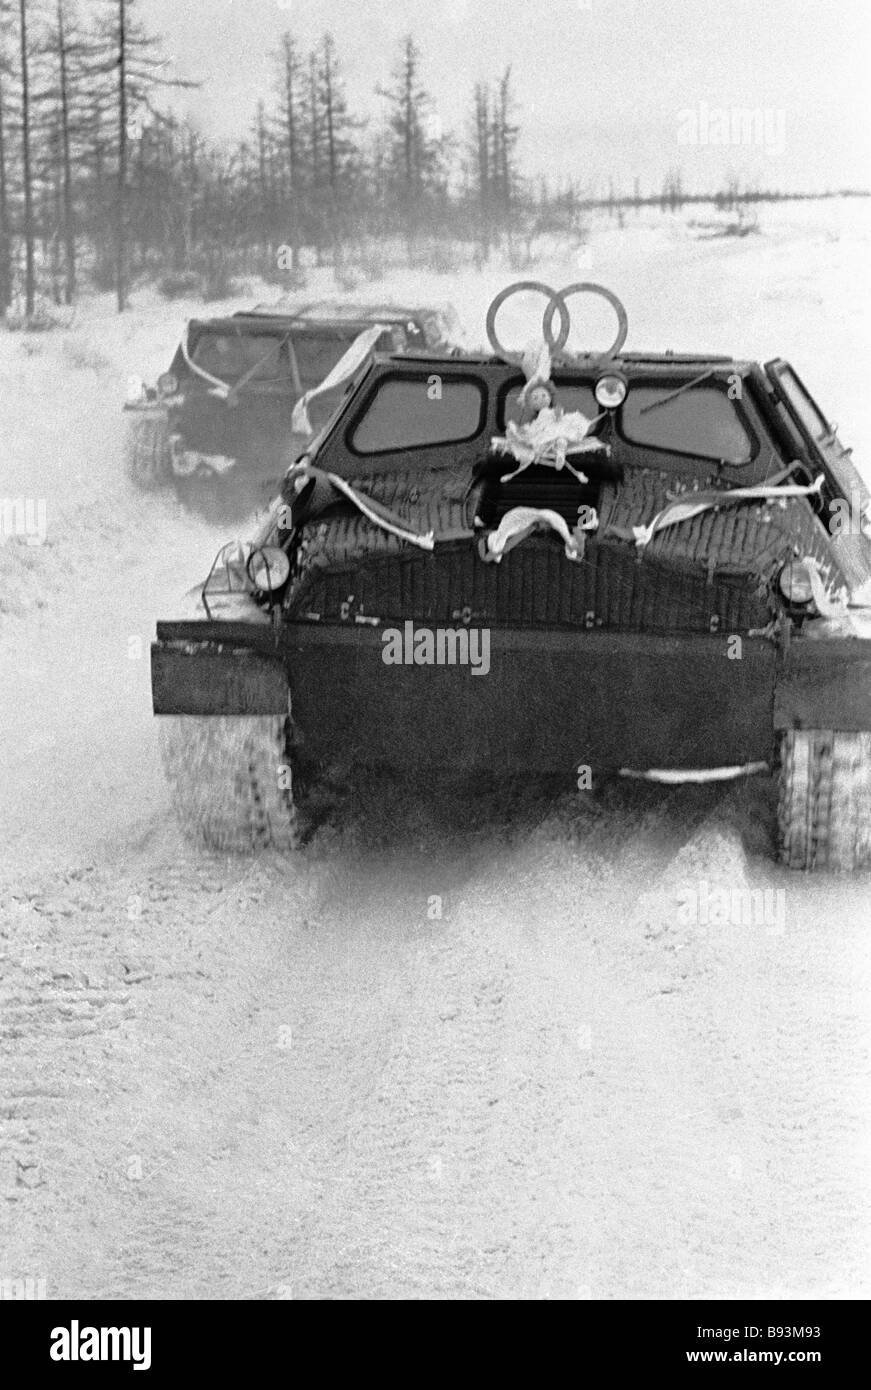 A cross country vehicle with an attached doll a wedding procession Arctic style - Stock Image